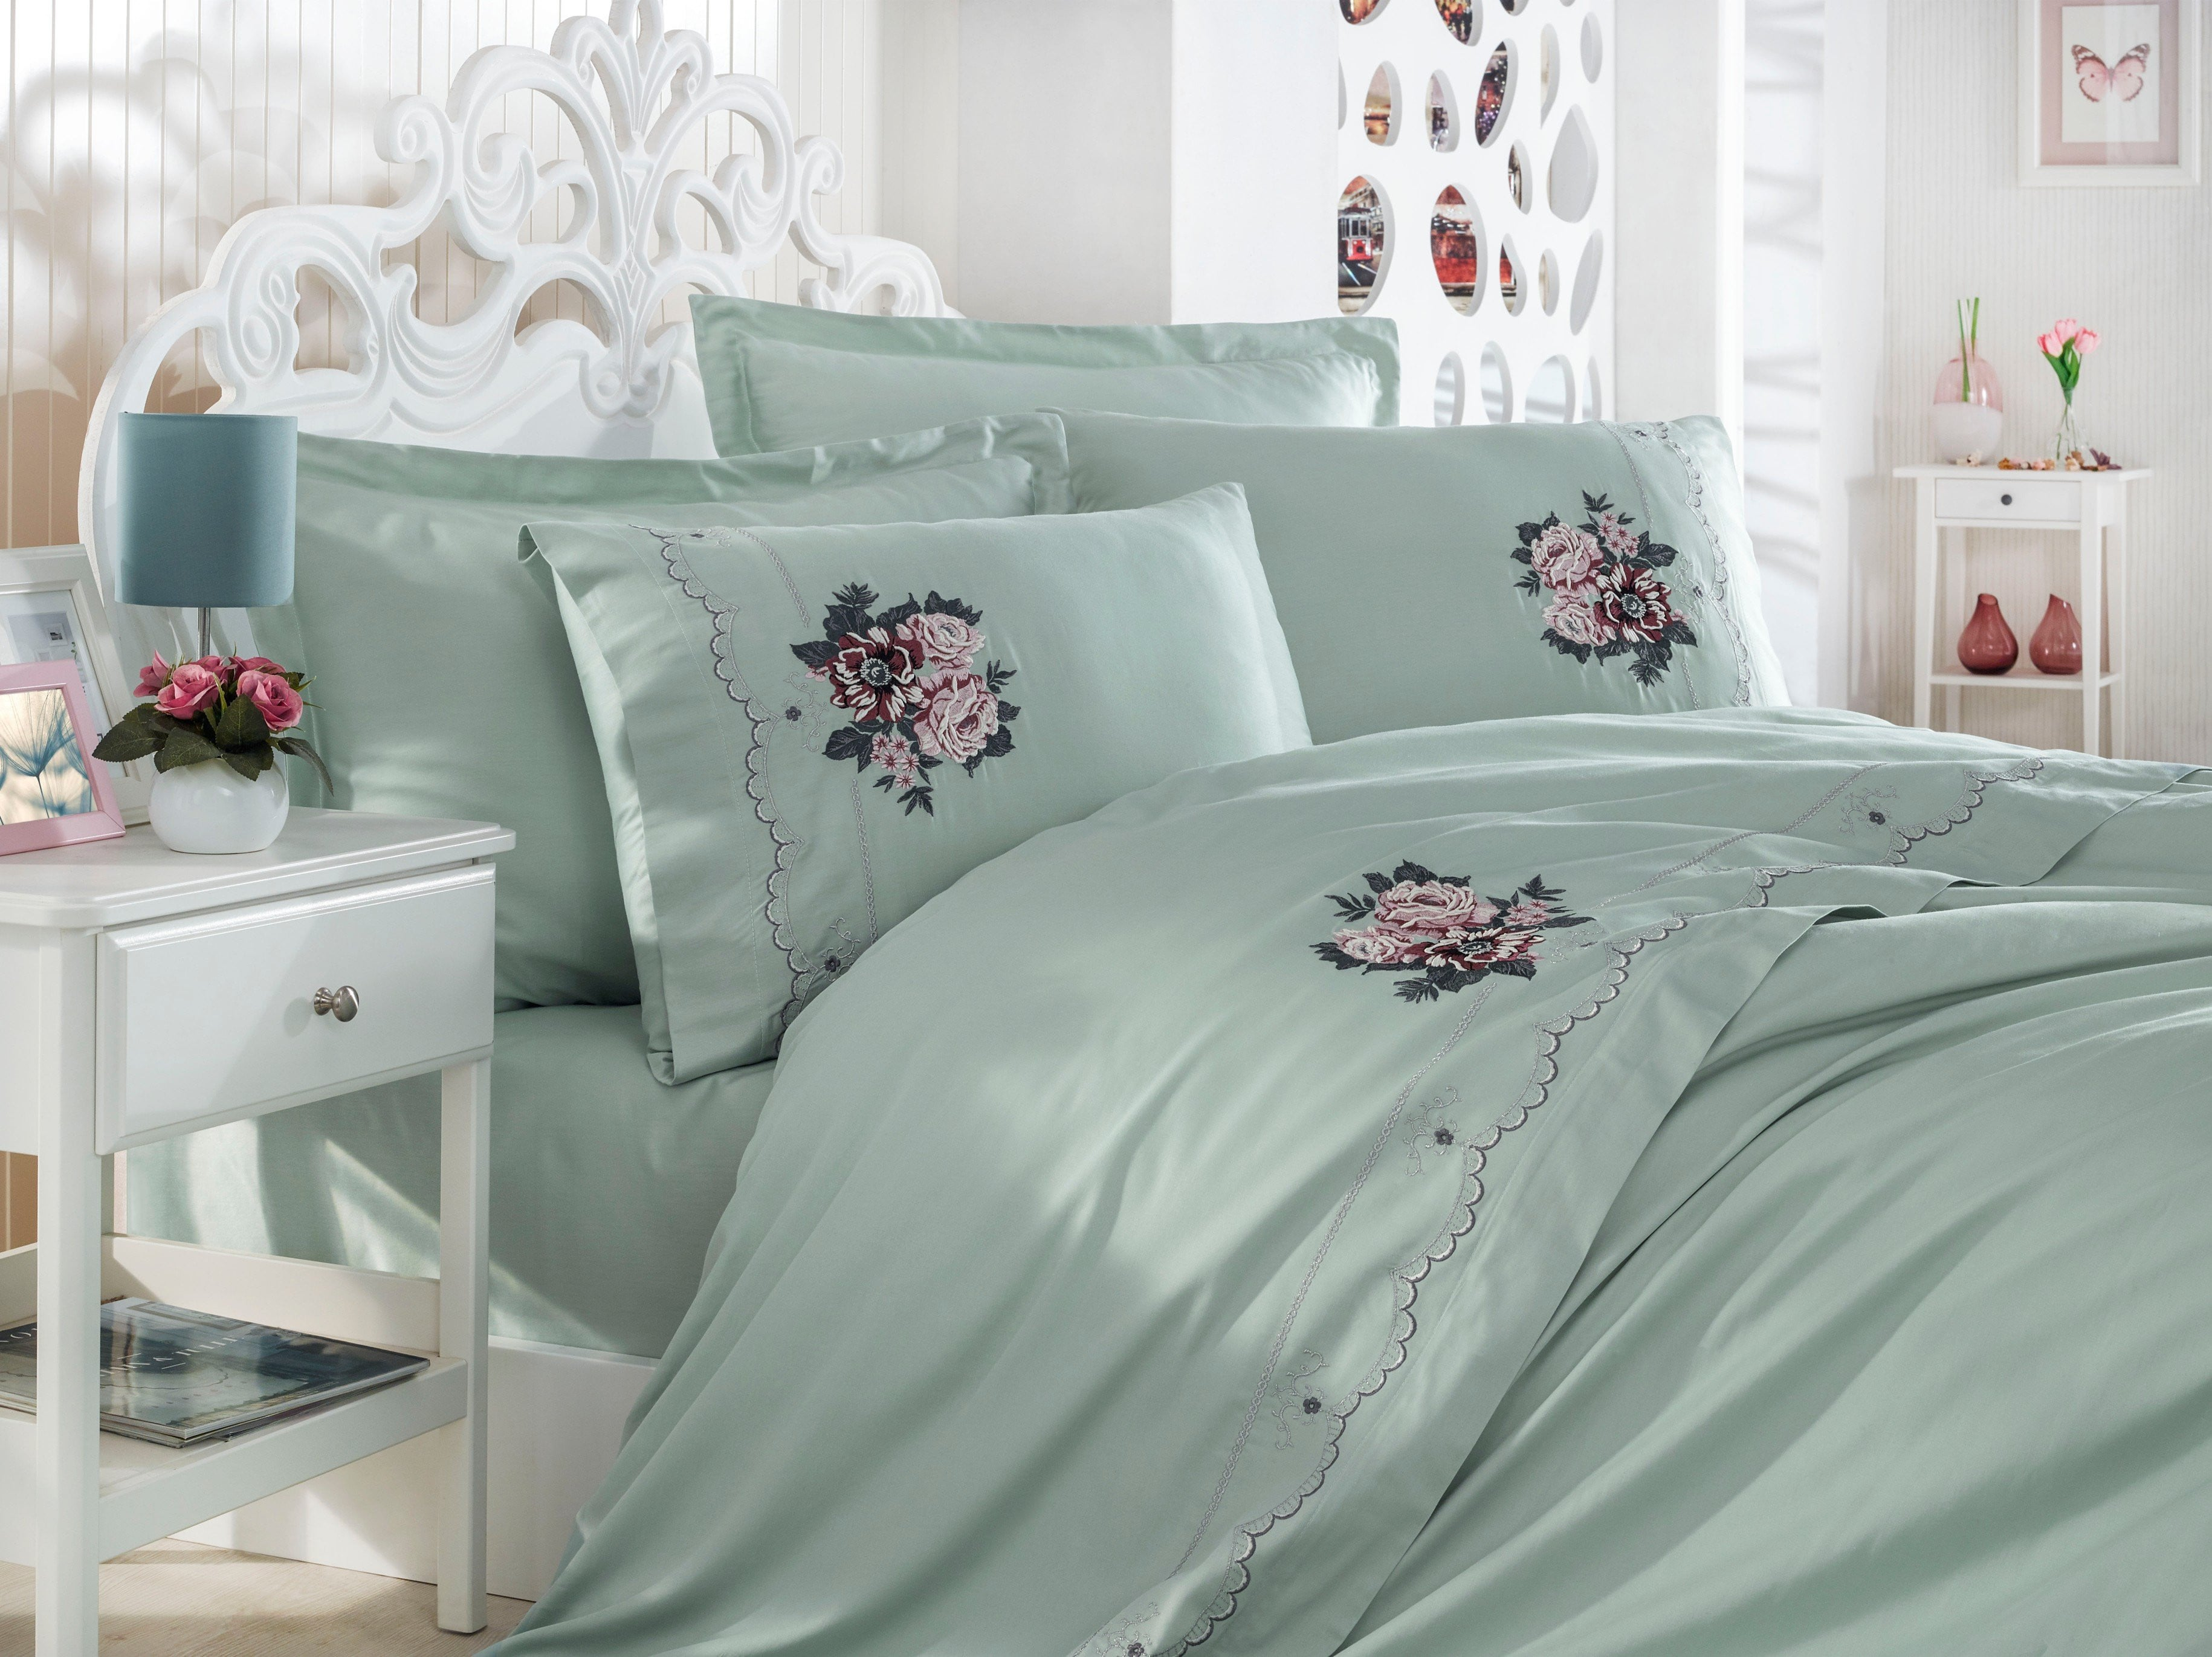 EMBROIDERY DECORATED BEST QUALITY COTTON SATIN DUVET COVER SET - COTTONISH